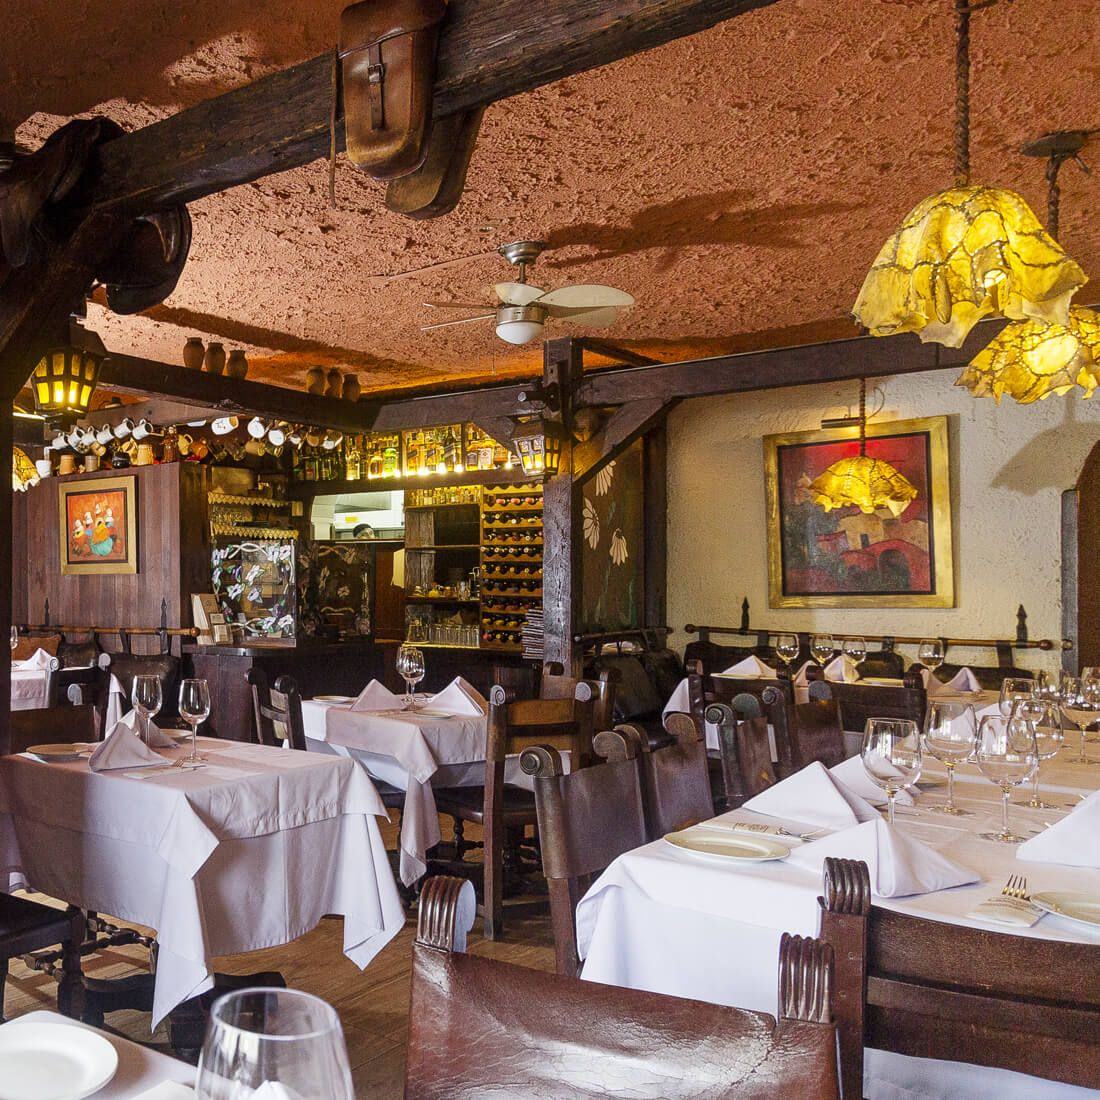 TRATTORIA DON VITO Restaurant - and Peruvian Food ITALIAN - MIRAFLORES - MESA 24/7 Guide | LIMA - Peru